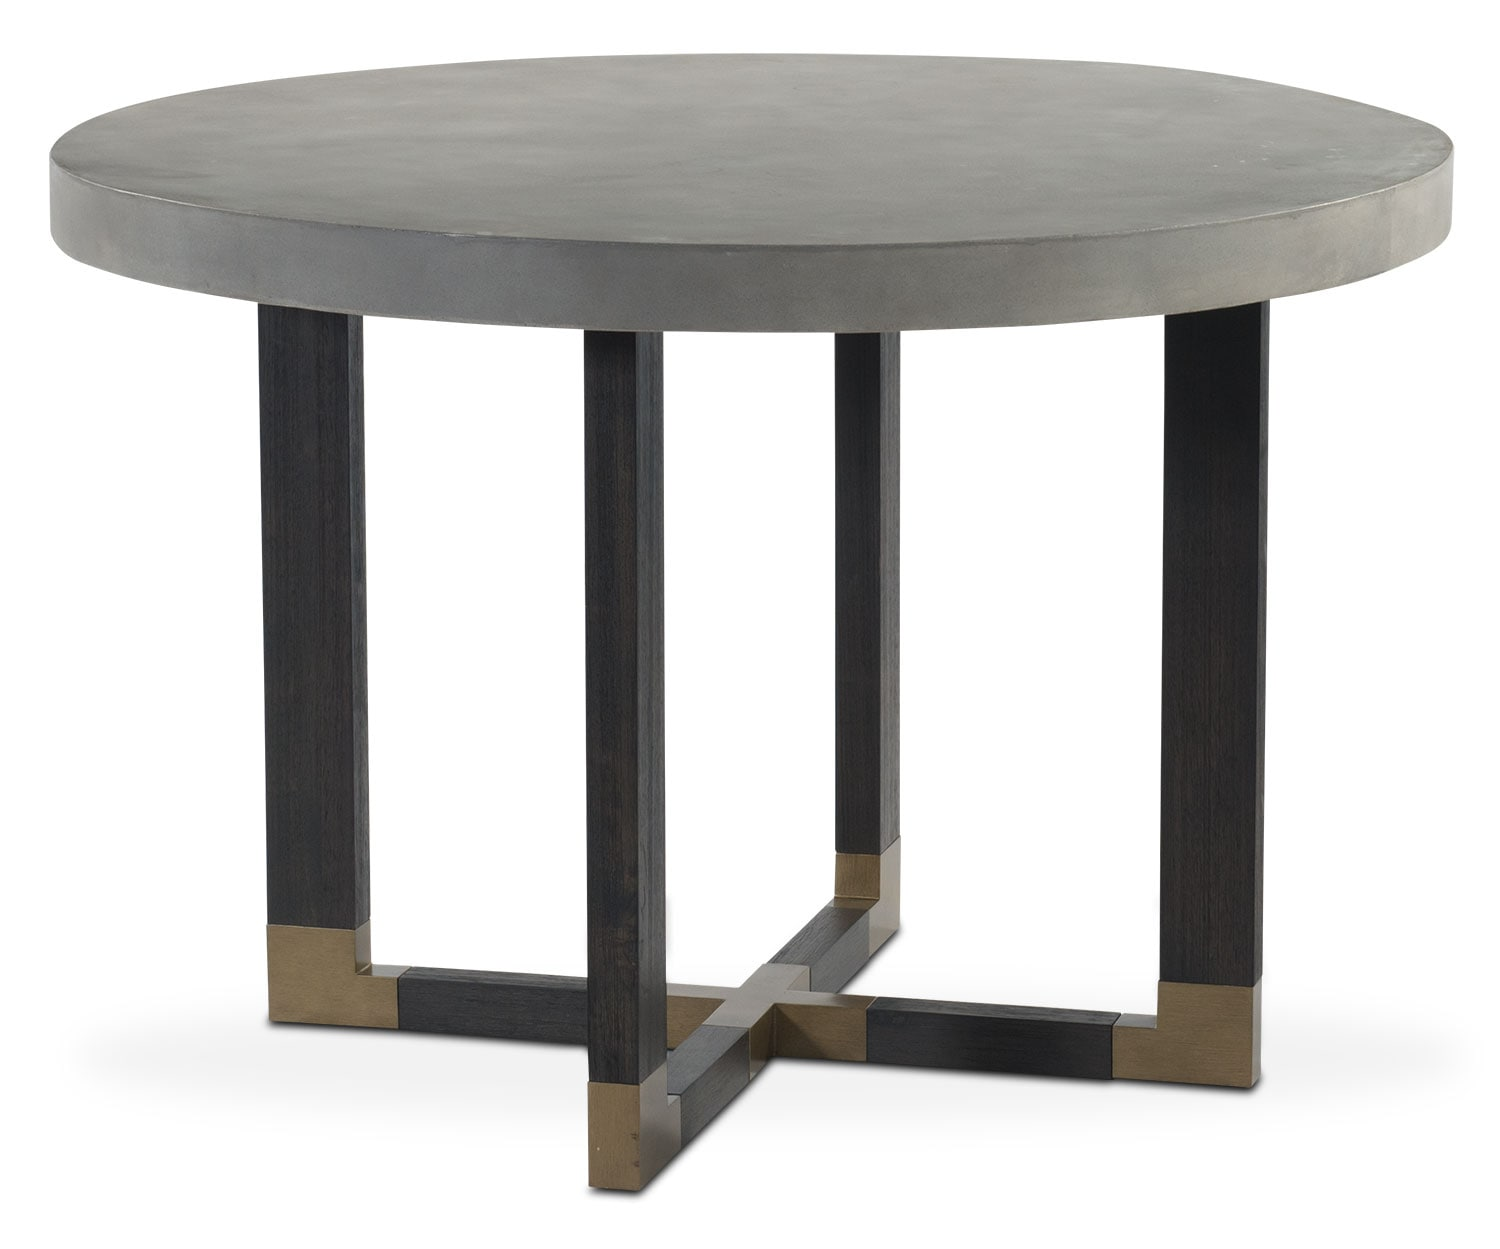 Malibu round counter height concrete top table umber american signature furniture